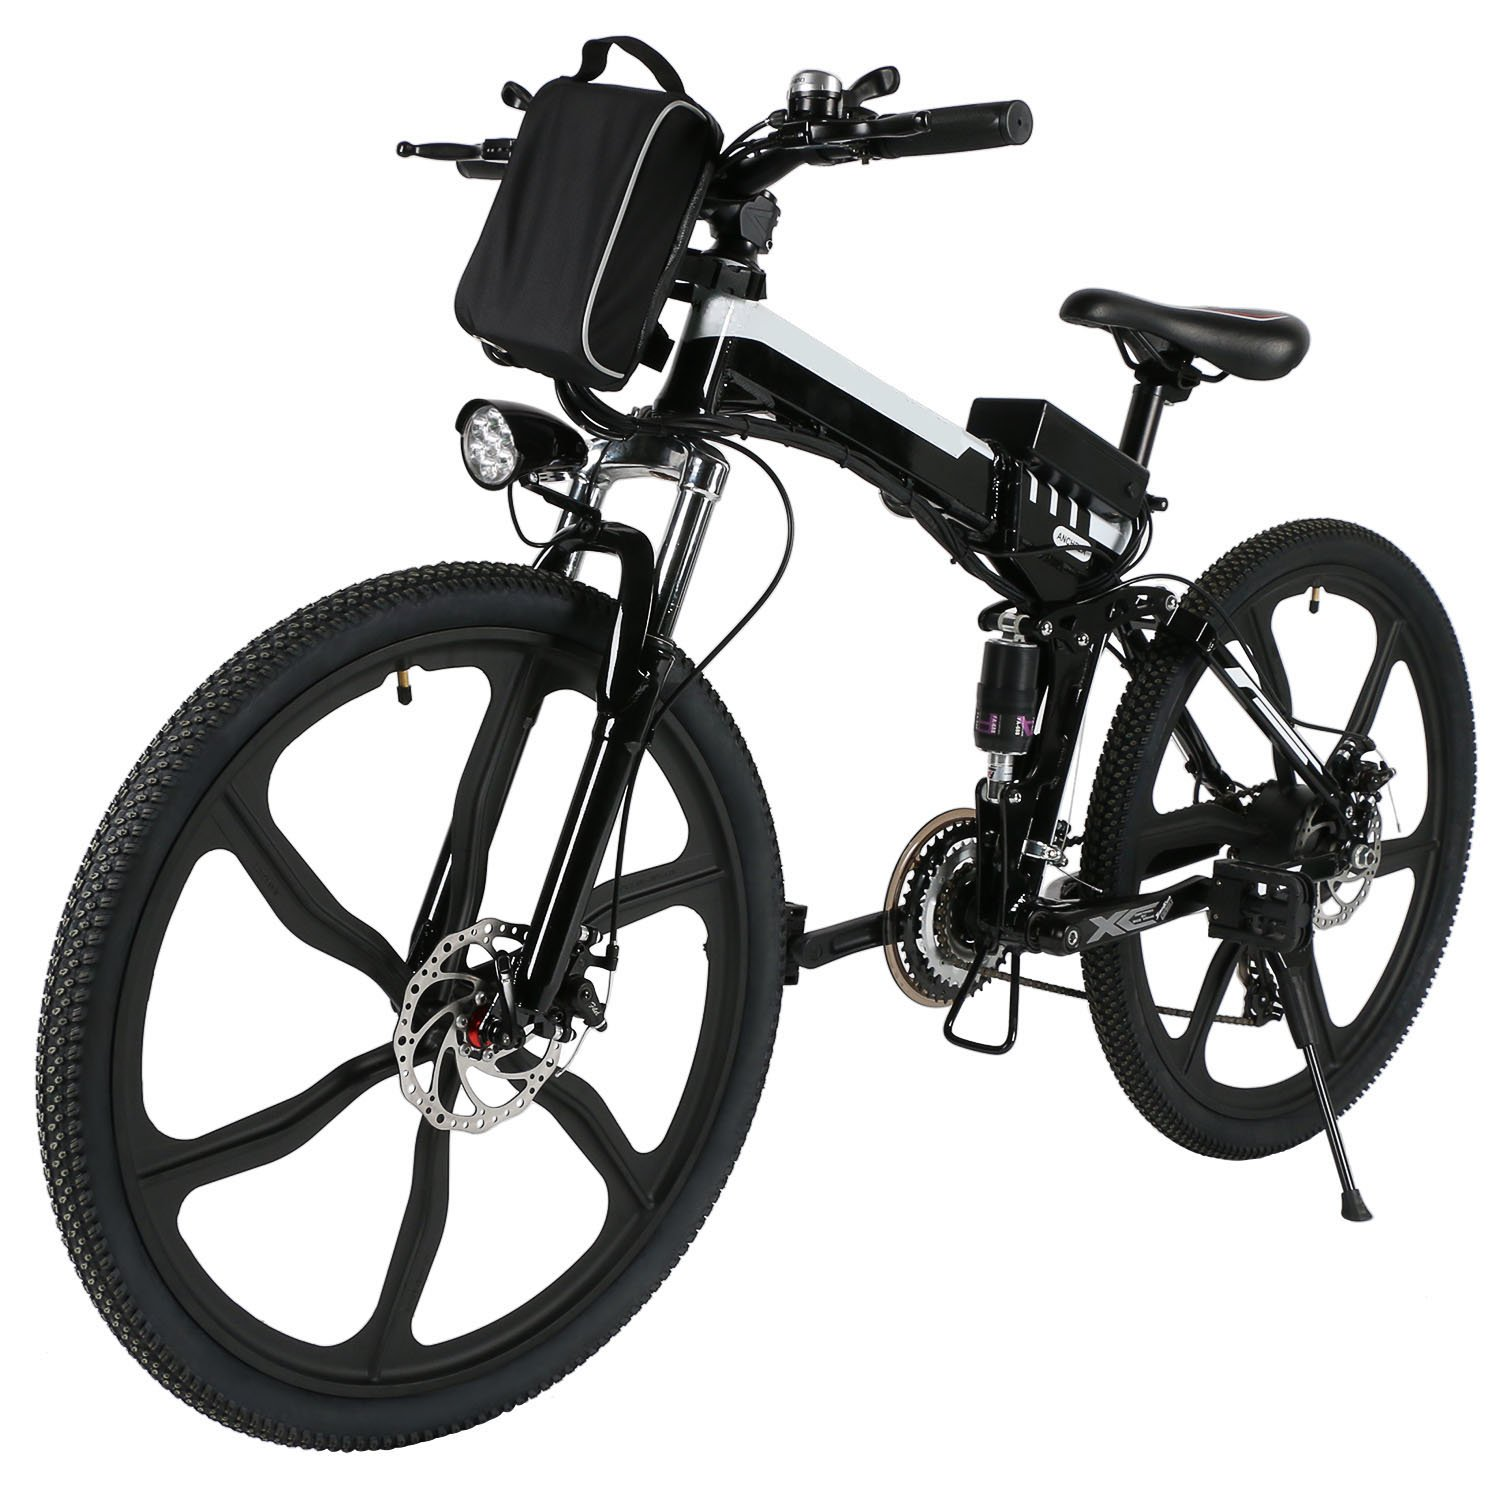 mymotto 26 inch design foldable mountain bike pedelec 27 km h Li-Ion Battery Structure mymotto 26 inch design foldable mountain bike pedelec 27 km h electric gear lithium ion battery black amazon co uk sports outdoors